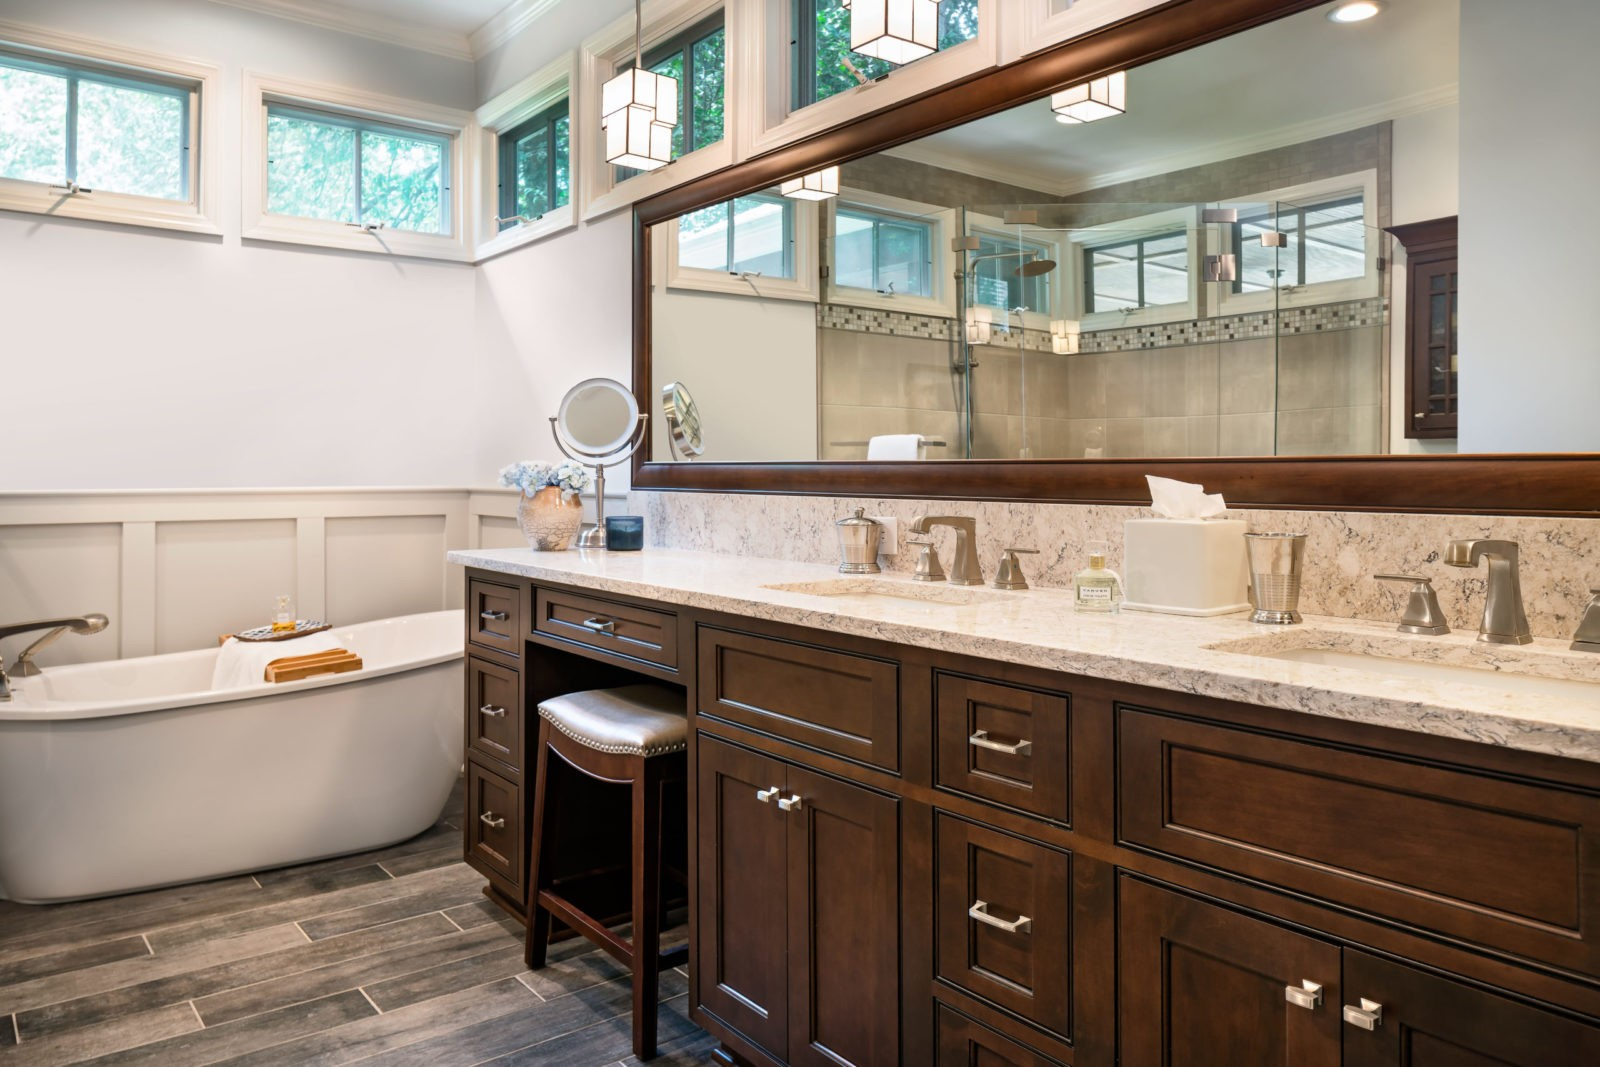 """Creamy quartz countertops with a 6"""" high backsplash rest on top of stained, inset cabinetry in the Craftsman master bathroom remode"""